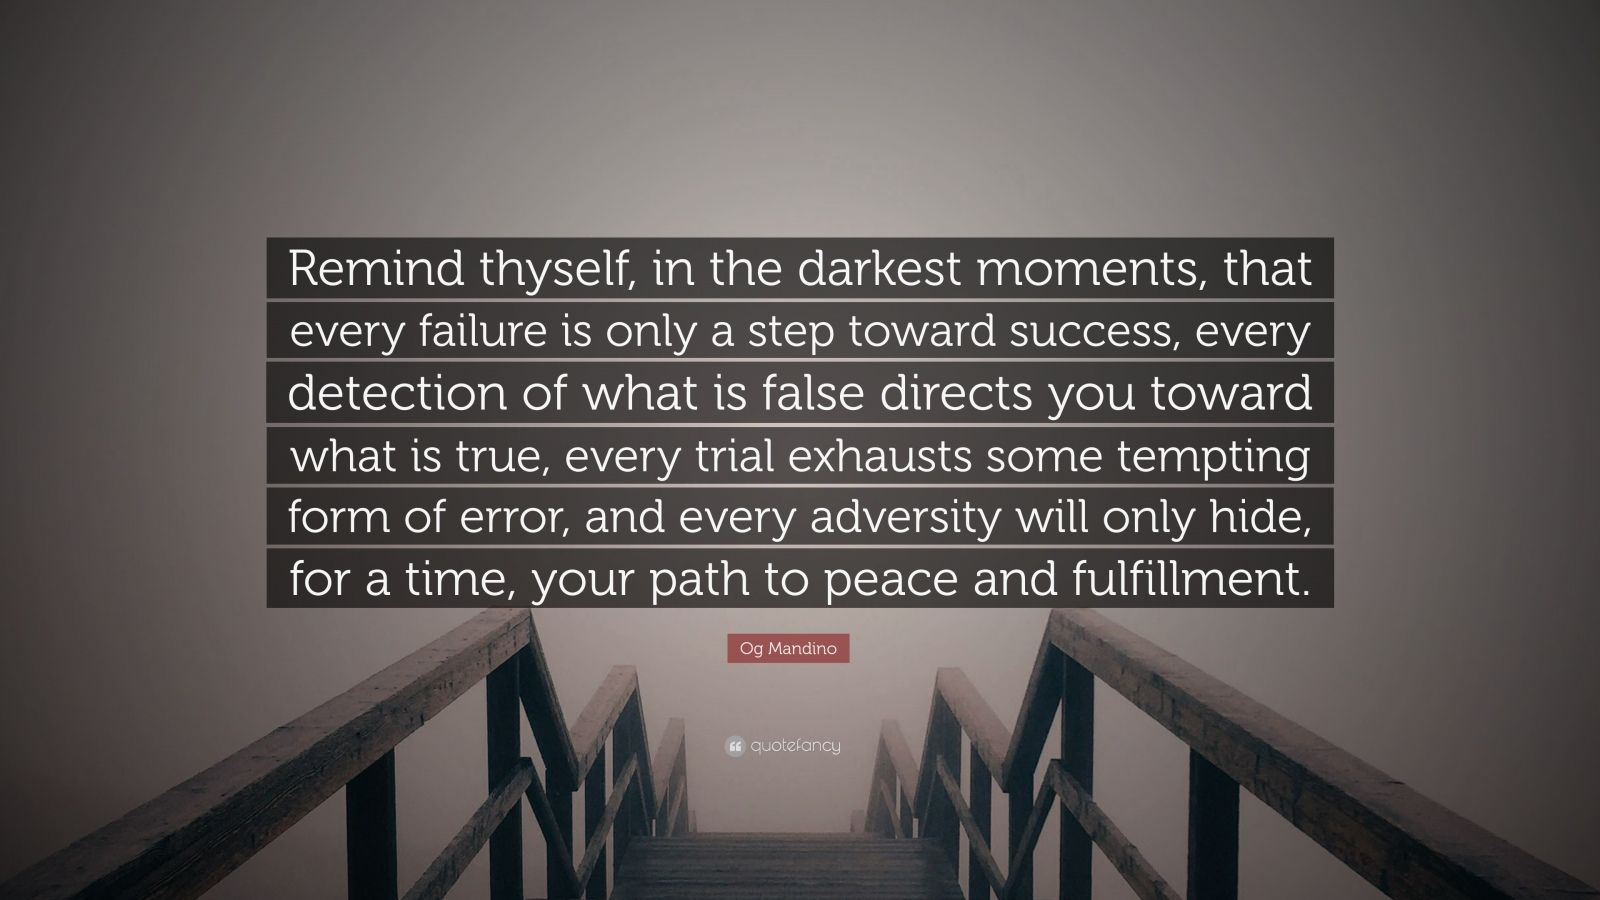 "Og Mandino Quote: ""Remind thyself, in the darkest moments, that every failure is only a step toward success, every detection of what is false directs you toward what is true, every trial exhausts some tempting form of error, and every adversity will only hide, for a time, your path to peace and fulfillment."""